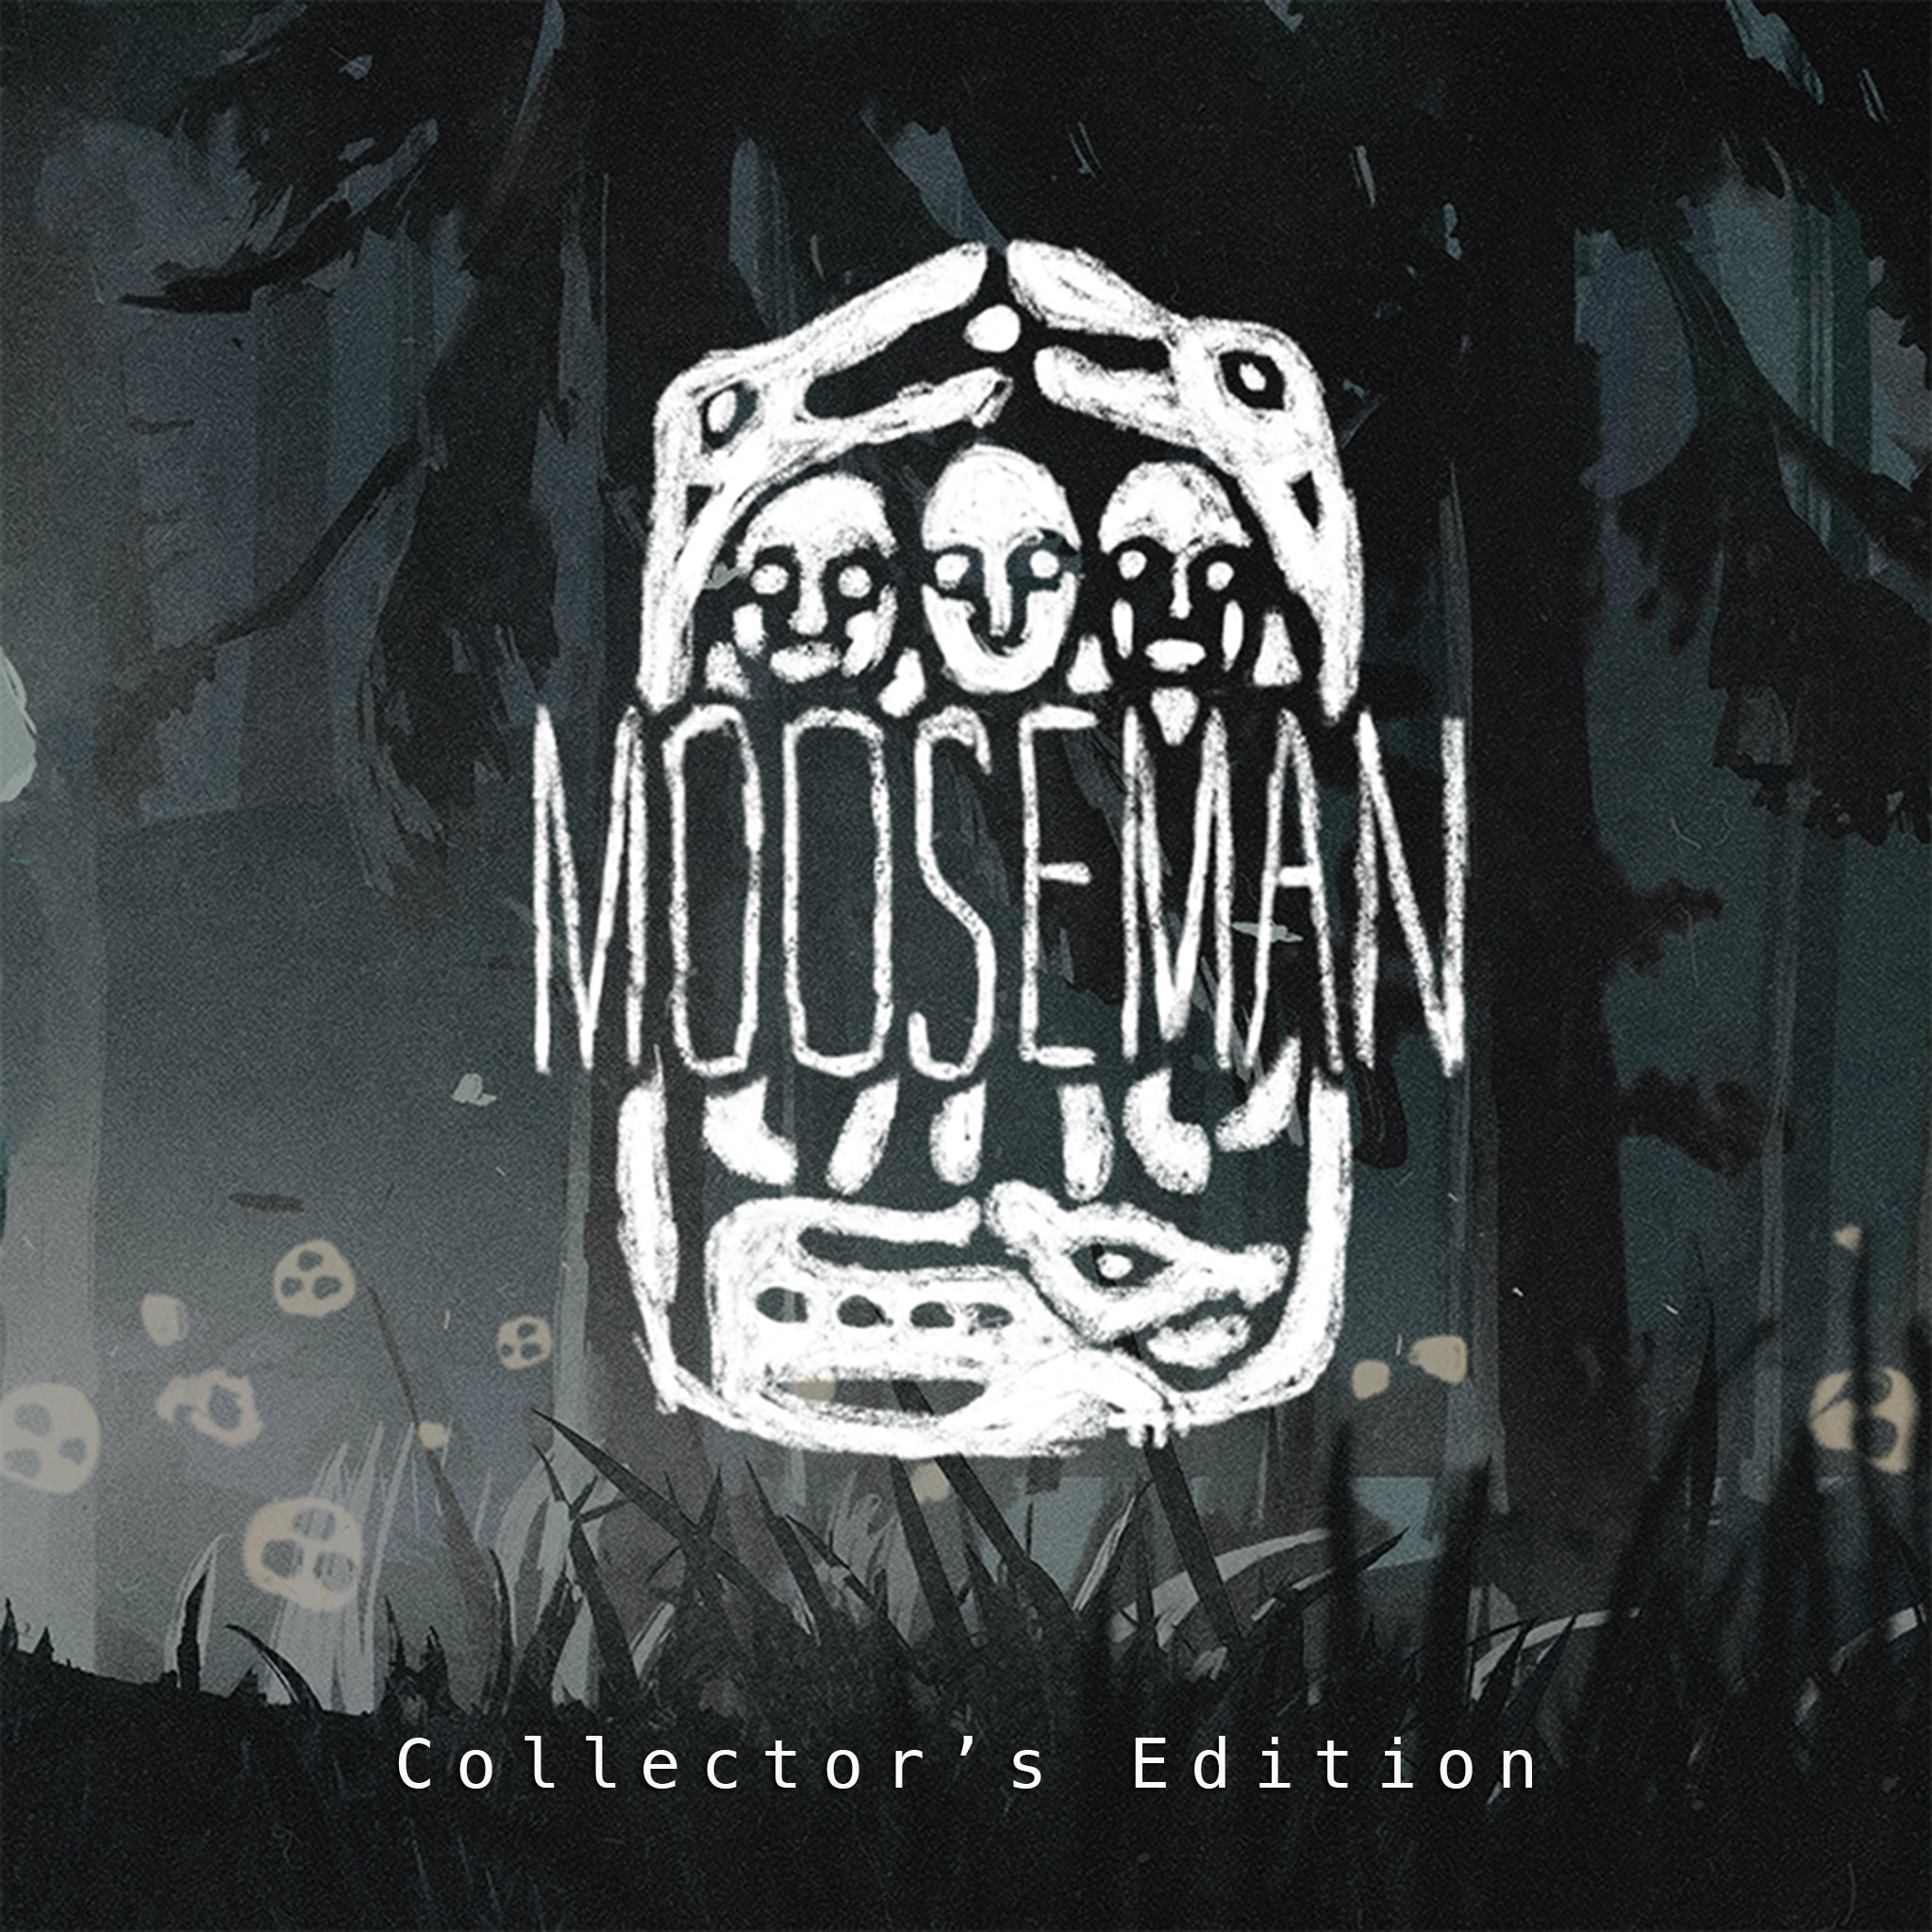 The Mooseman Collector's Edition